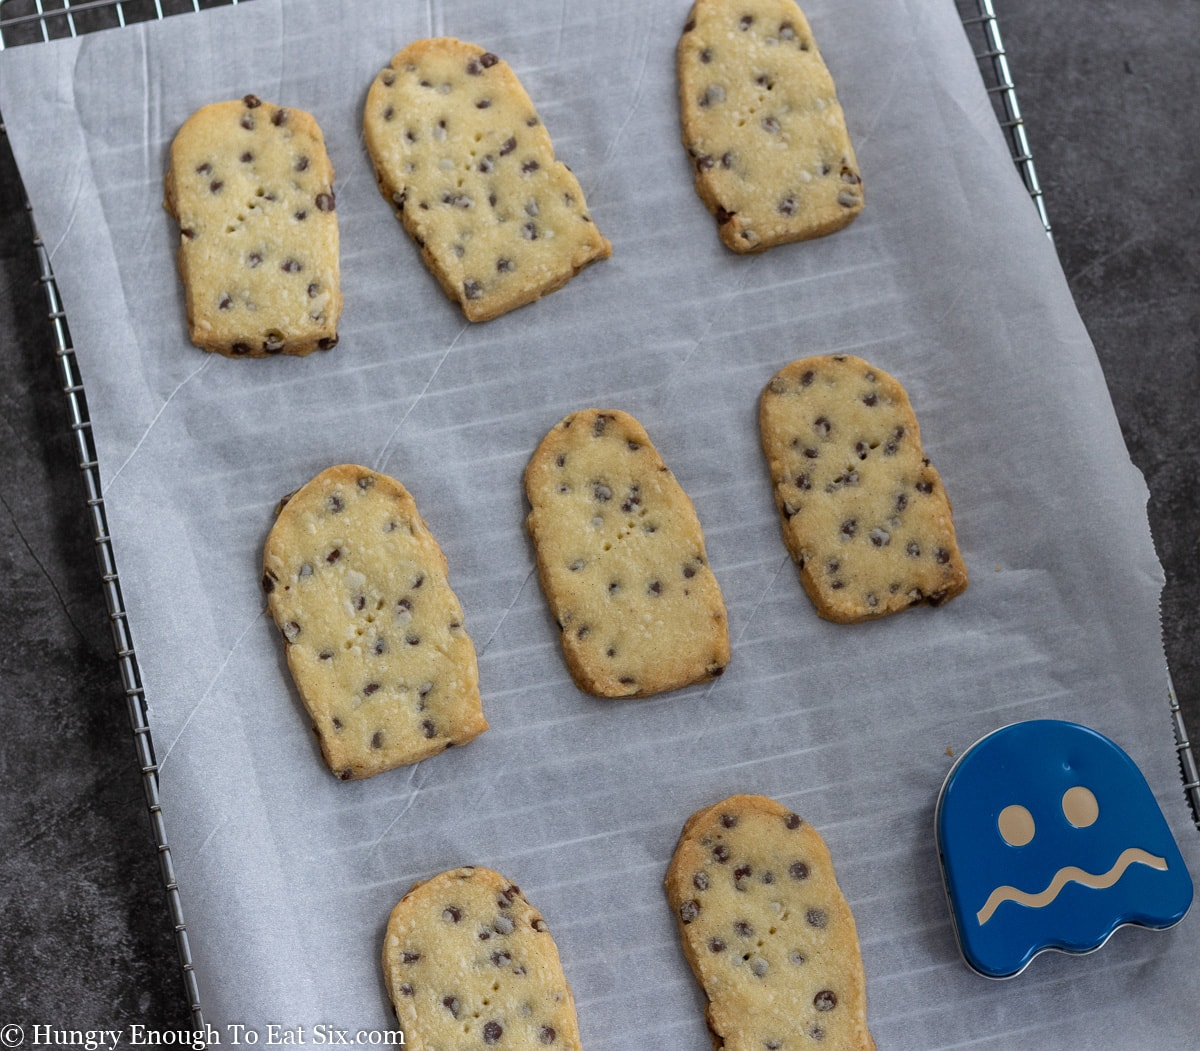 Baked oval chocolate chip cookies on a lined baking sheet and one blue metal ghost tin